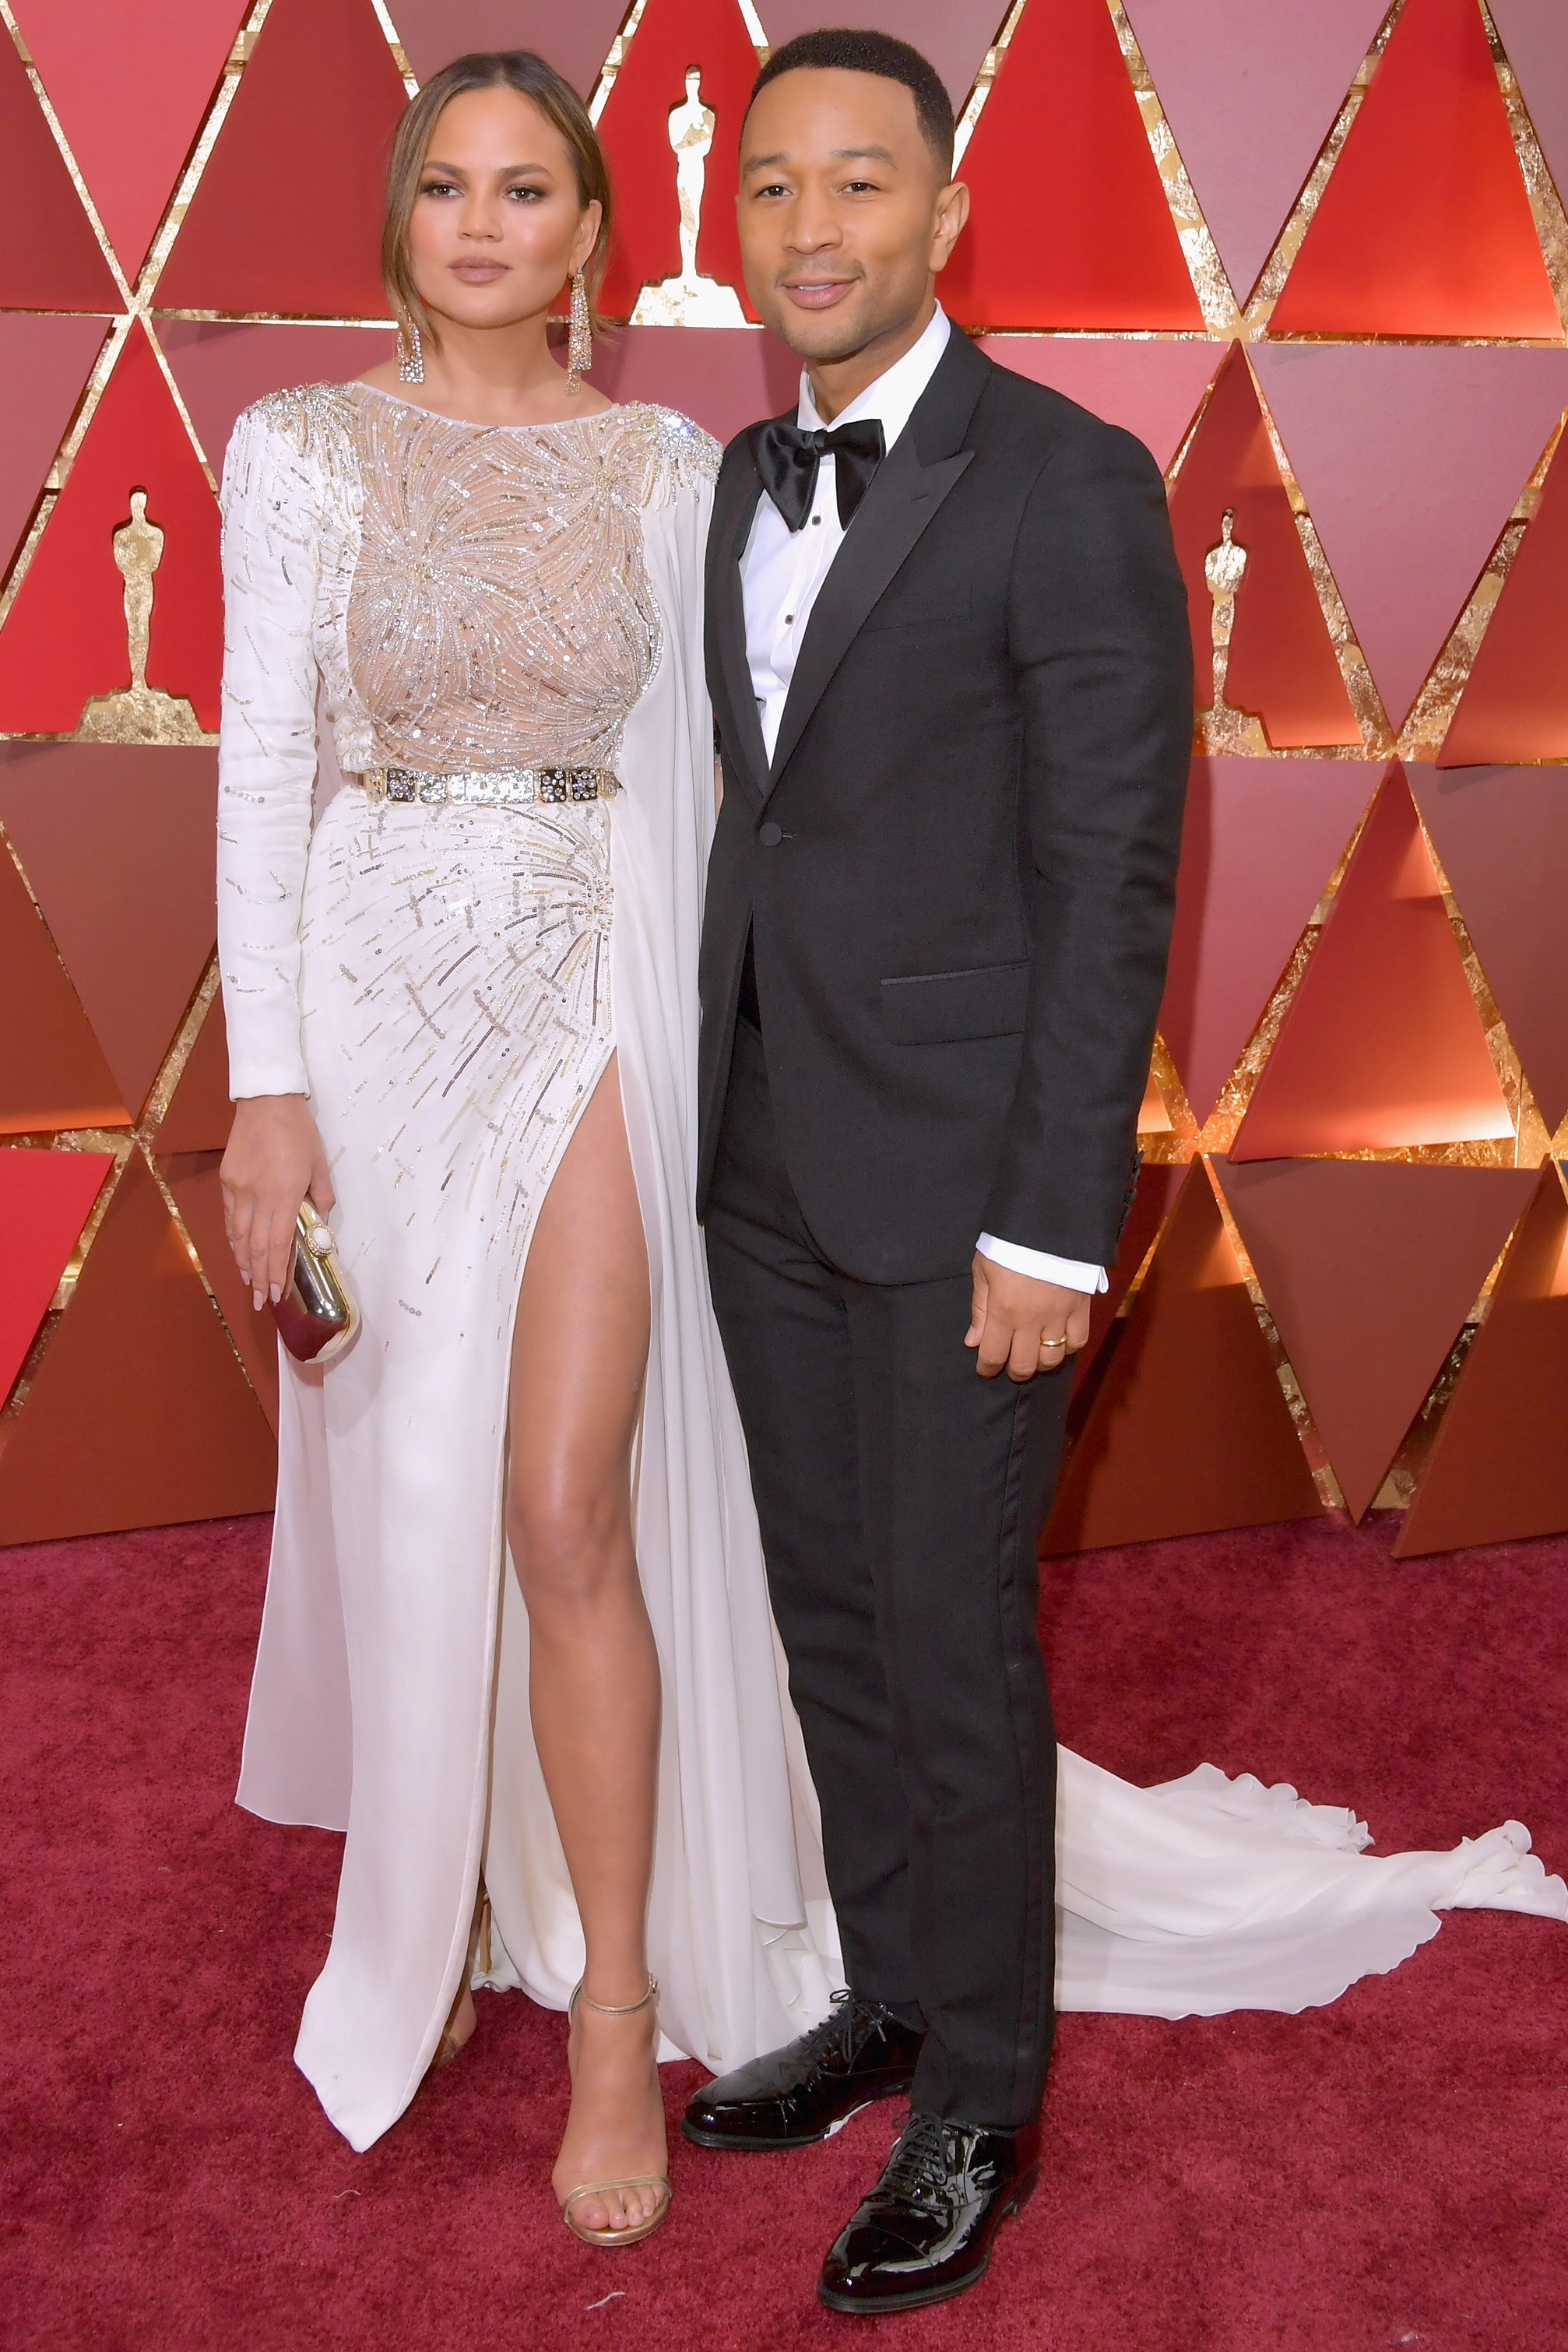 3a73061470 John-Legend-wearing-a-70s-inspired-huge -floppy-bow-tie-with-peaked-lapel-1-button-tux-with-flap-pockets-and-patent-leather-captoe-Oxfords.jpg